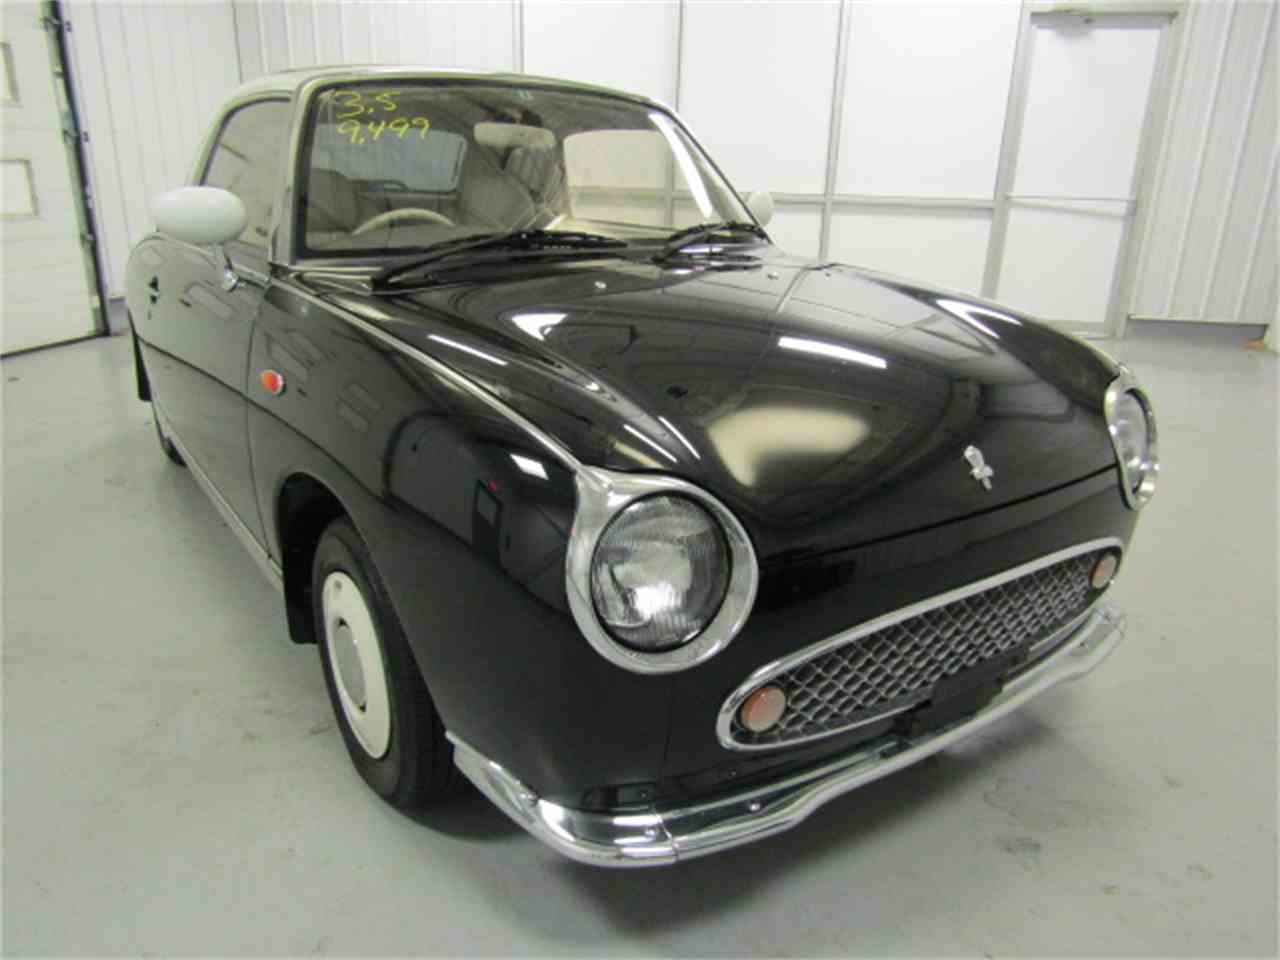 1991 Nissan Figaro for Sale - CC-920496